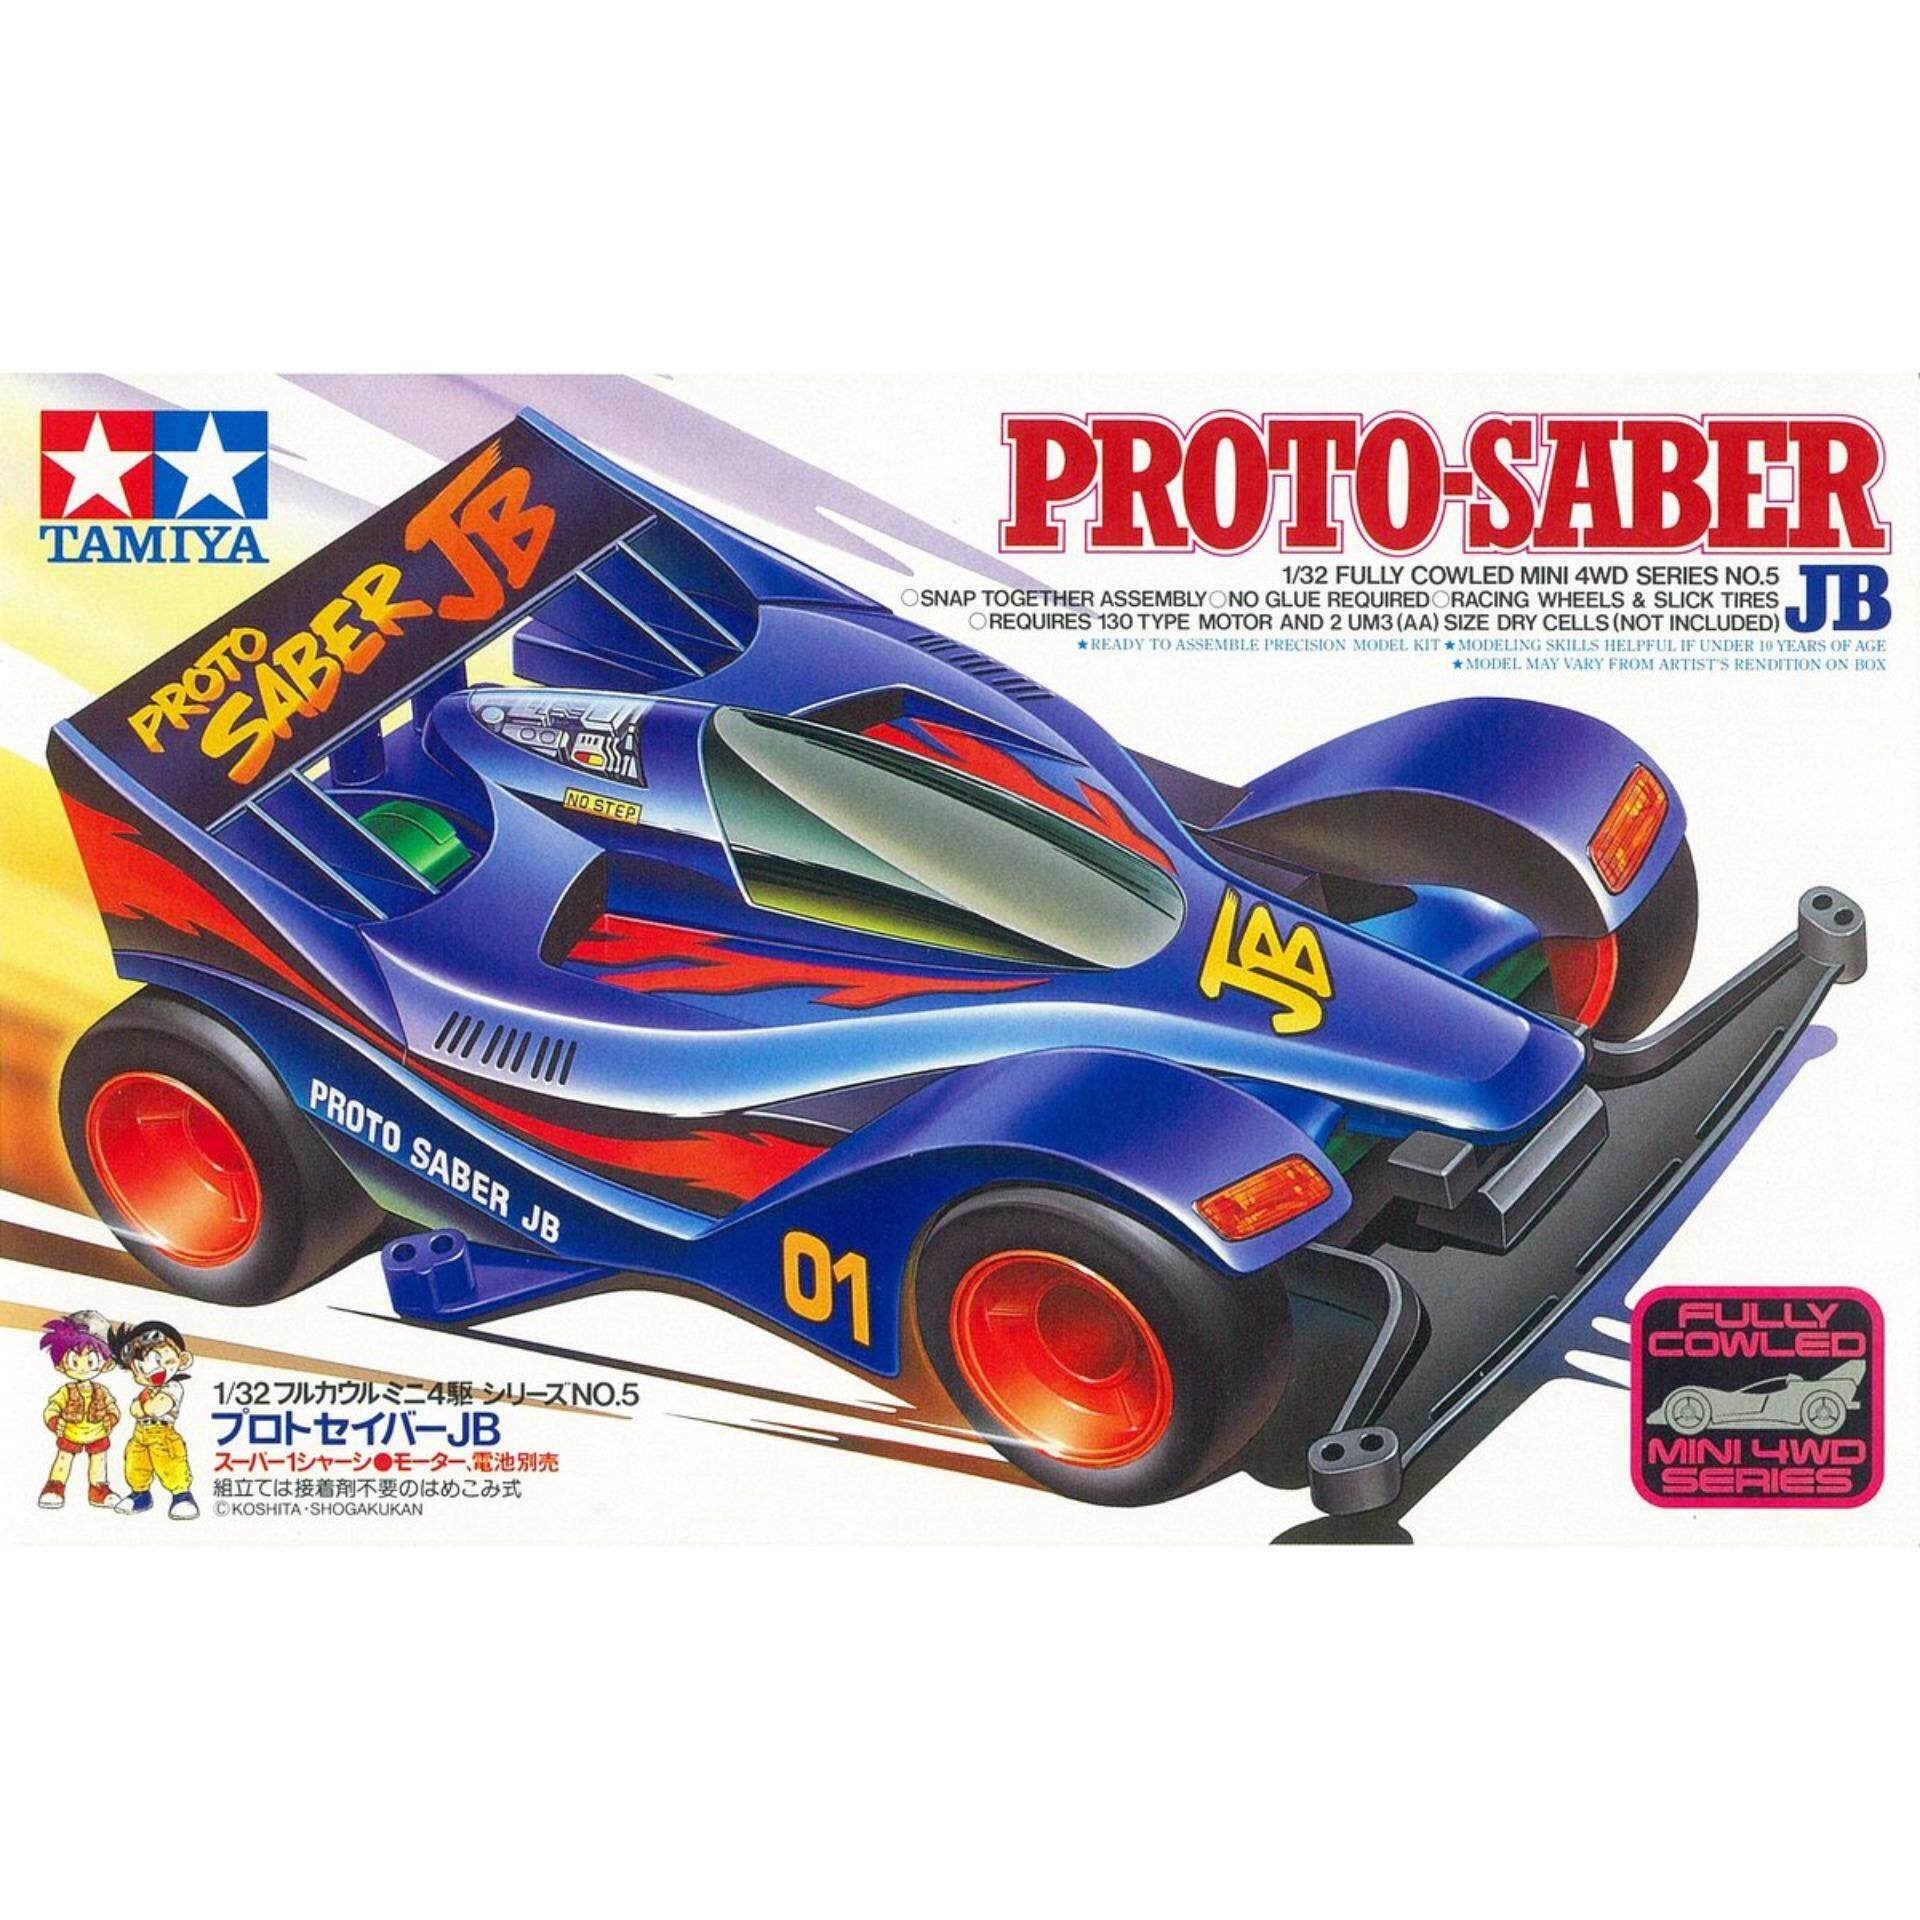 Popular Tamiya Race Cars For The Best Prices In Malaysia Super Ii Chassis Red Original 1 32 Proto Saber Jb I